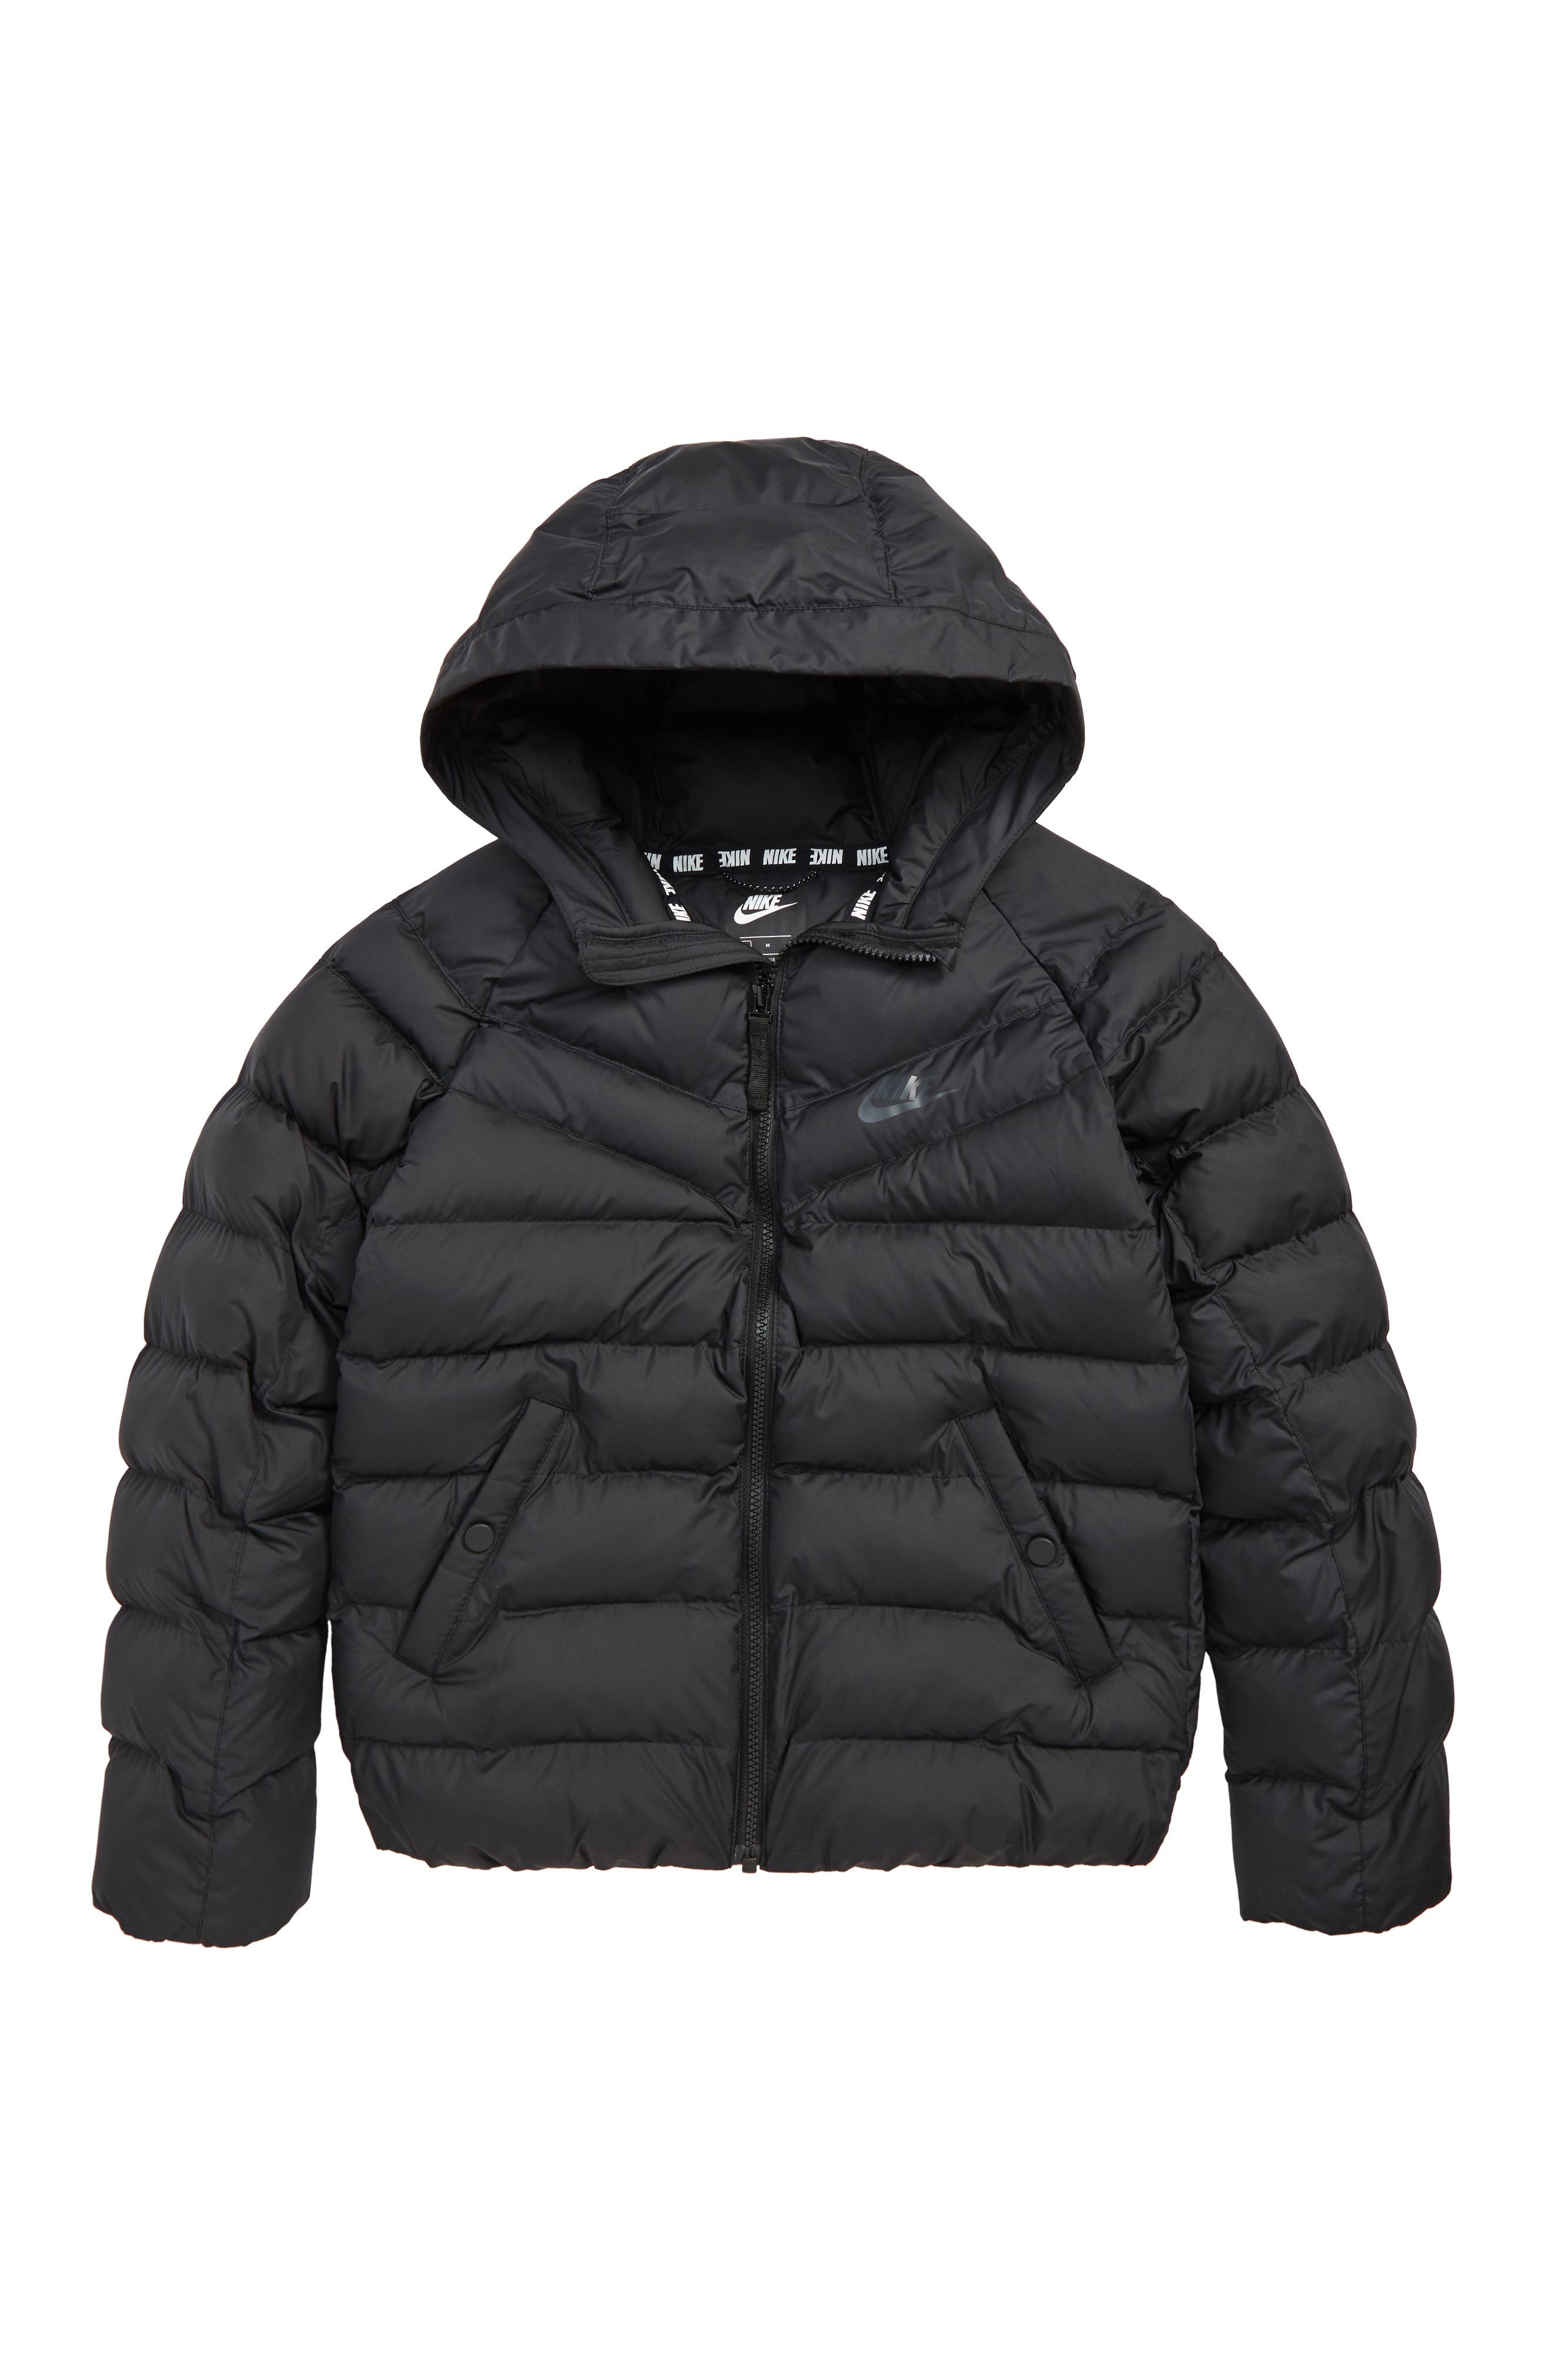 Boys Nike Sportswear Insulated Quilted Jacket